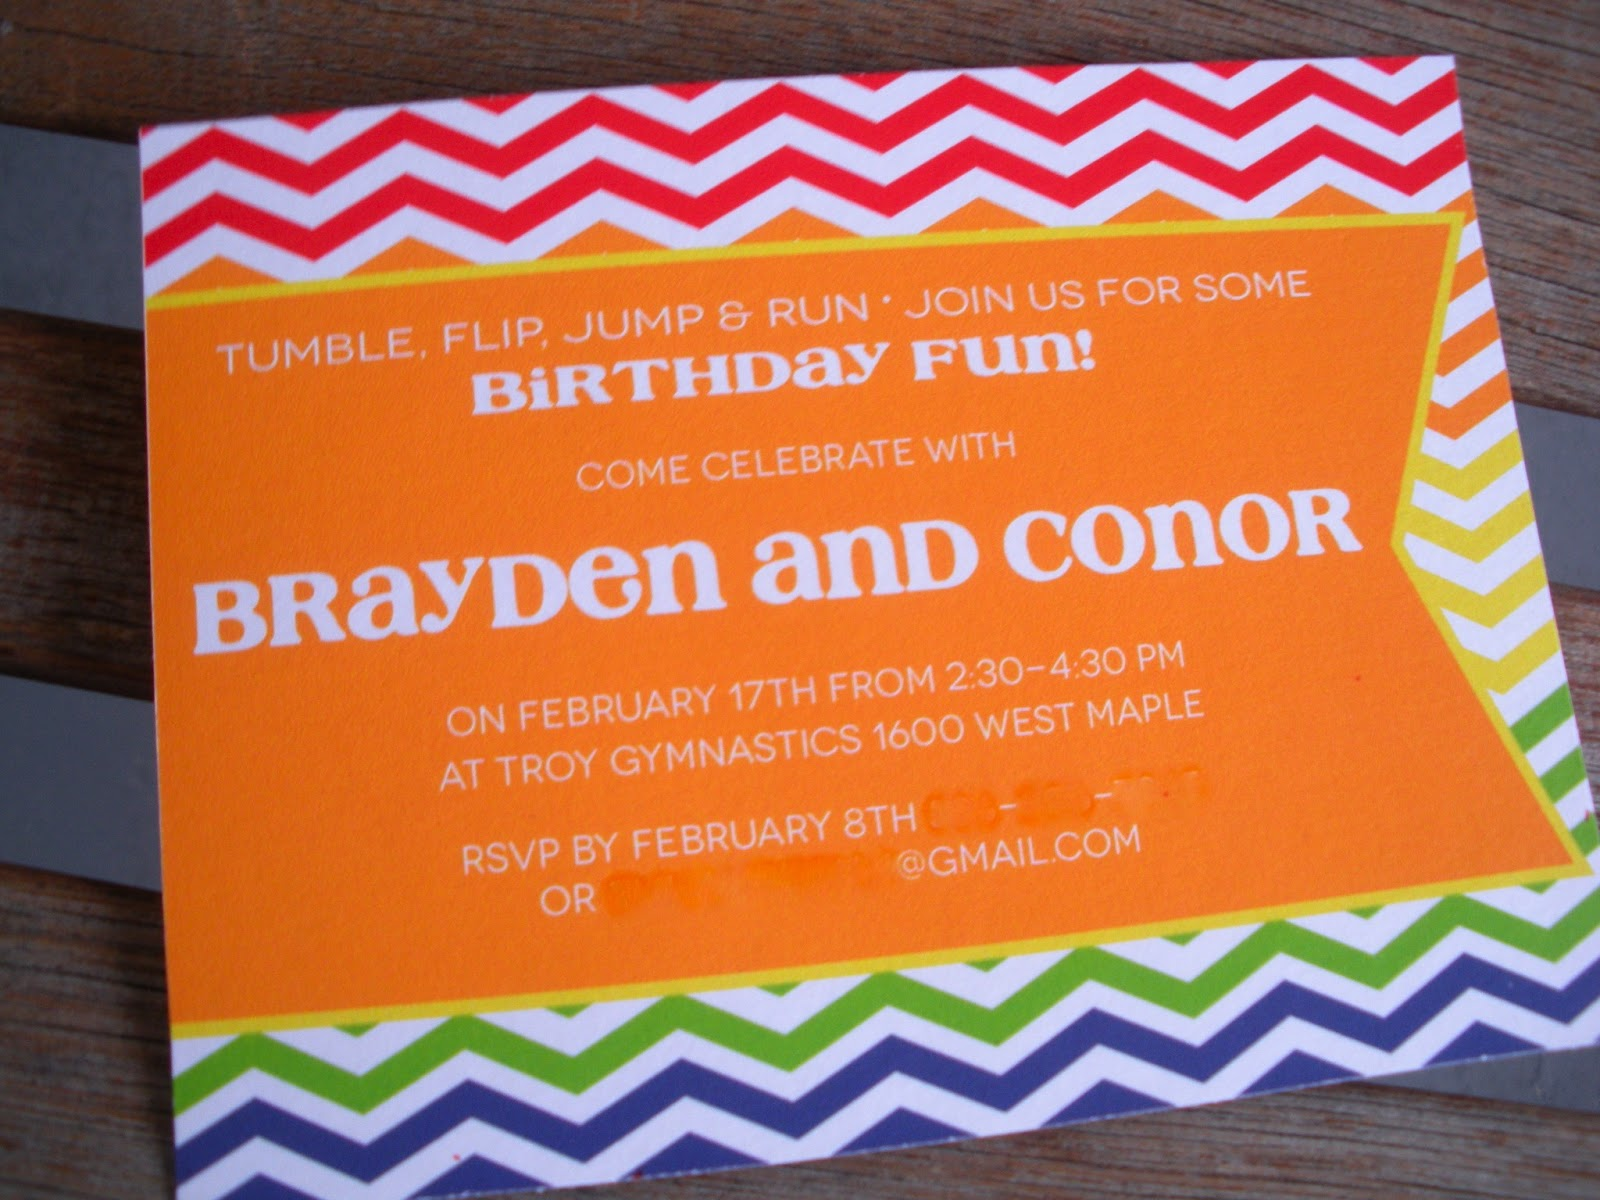 Vivian Elle Invitations Brayden and Conors Birthday Party Invites – Dual Birthday Party Invitations